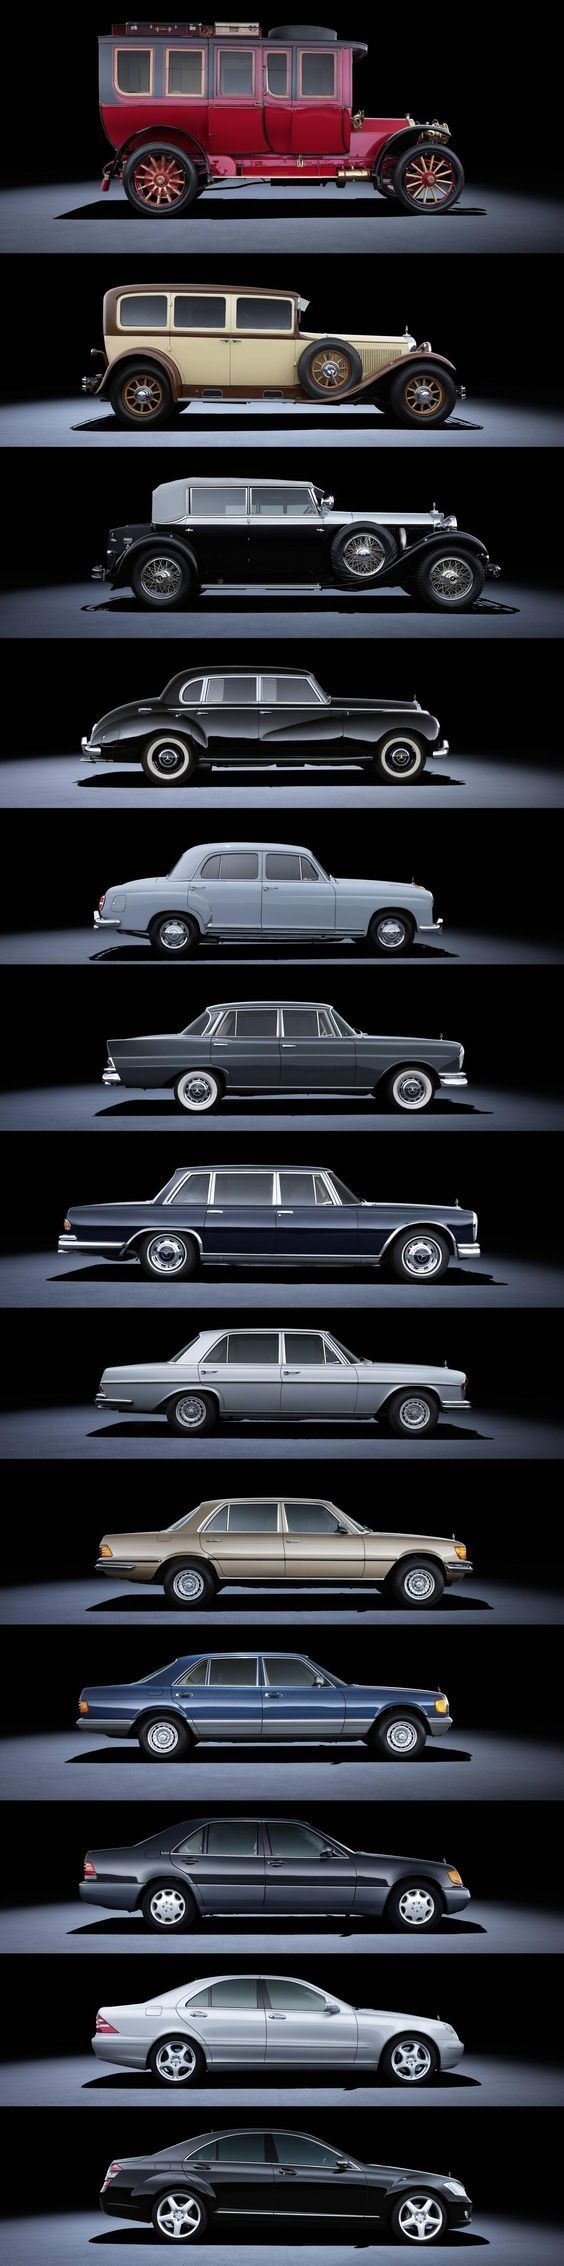 Evolution of the Mercedes S Class